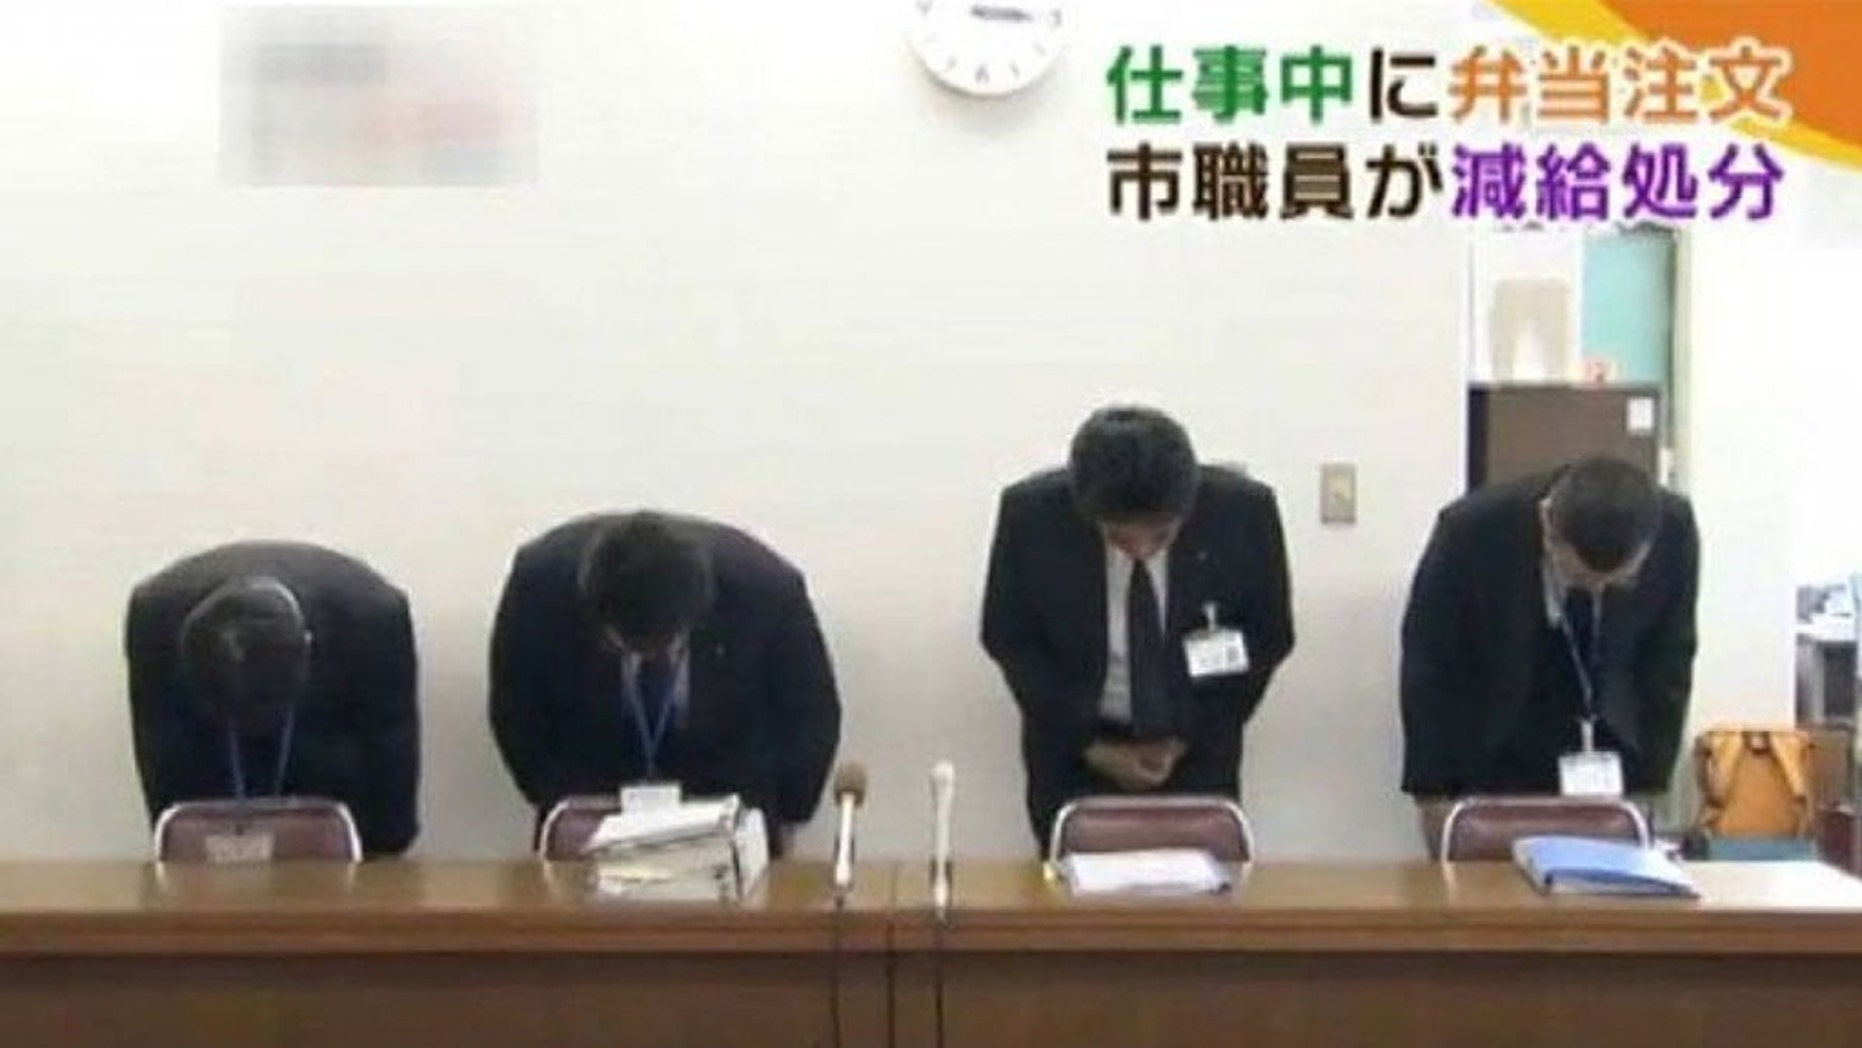 """Executives at the Kobe waterworks bureau apologized for the """"deeply regrettable"""" offense at a press conference."""